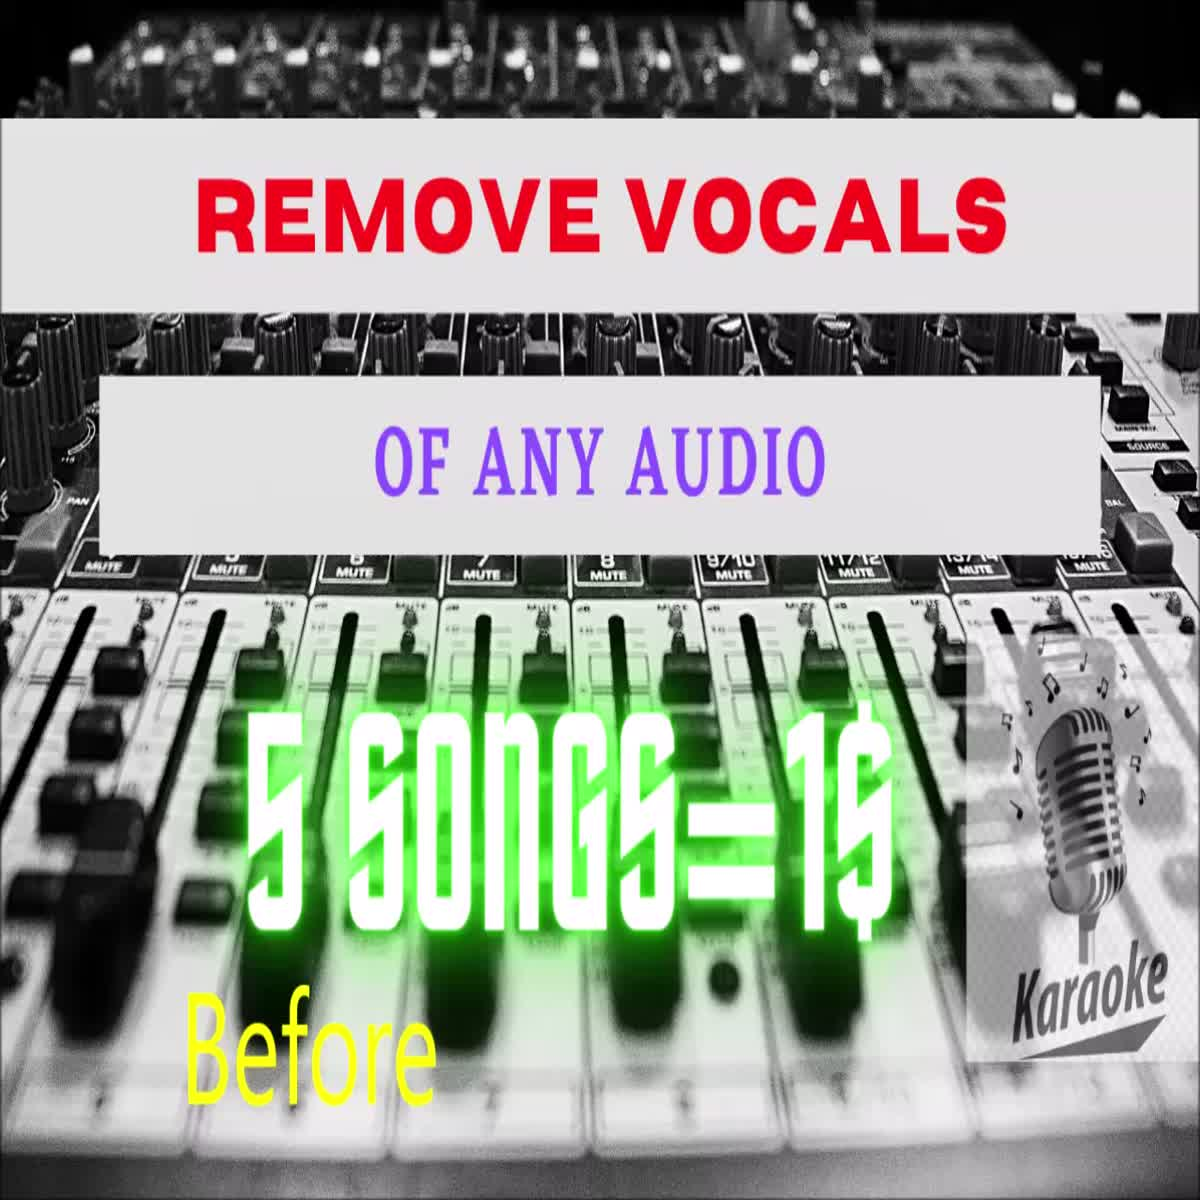 i will remove vocals of 2 songs and make karaoke.